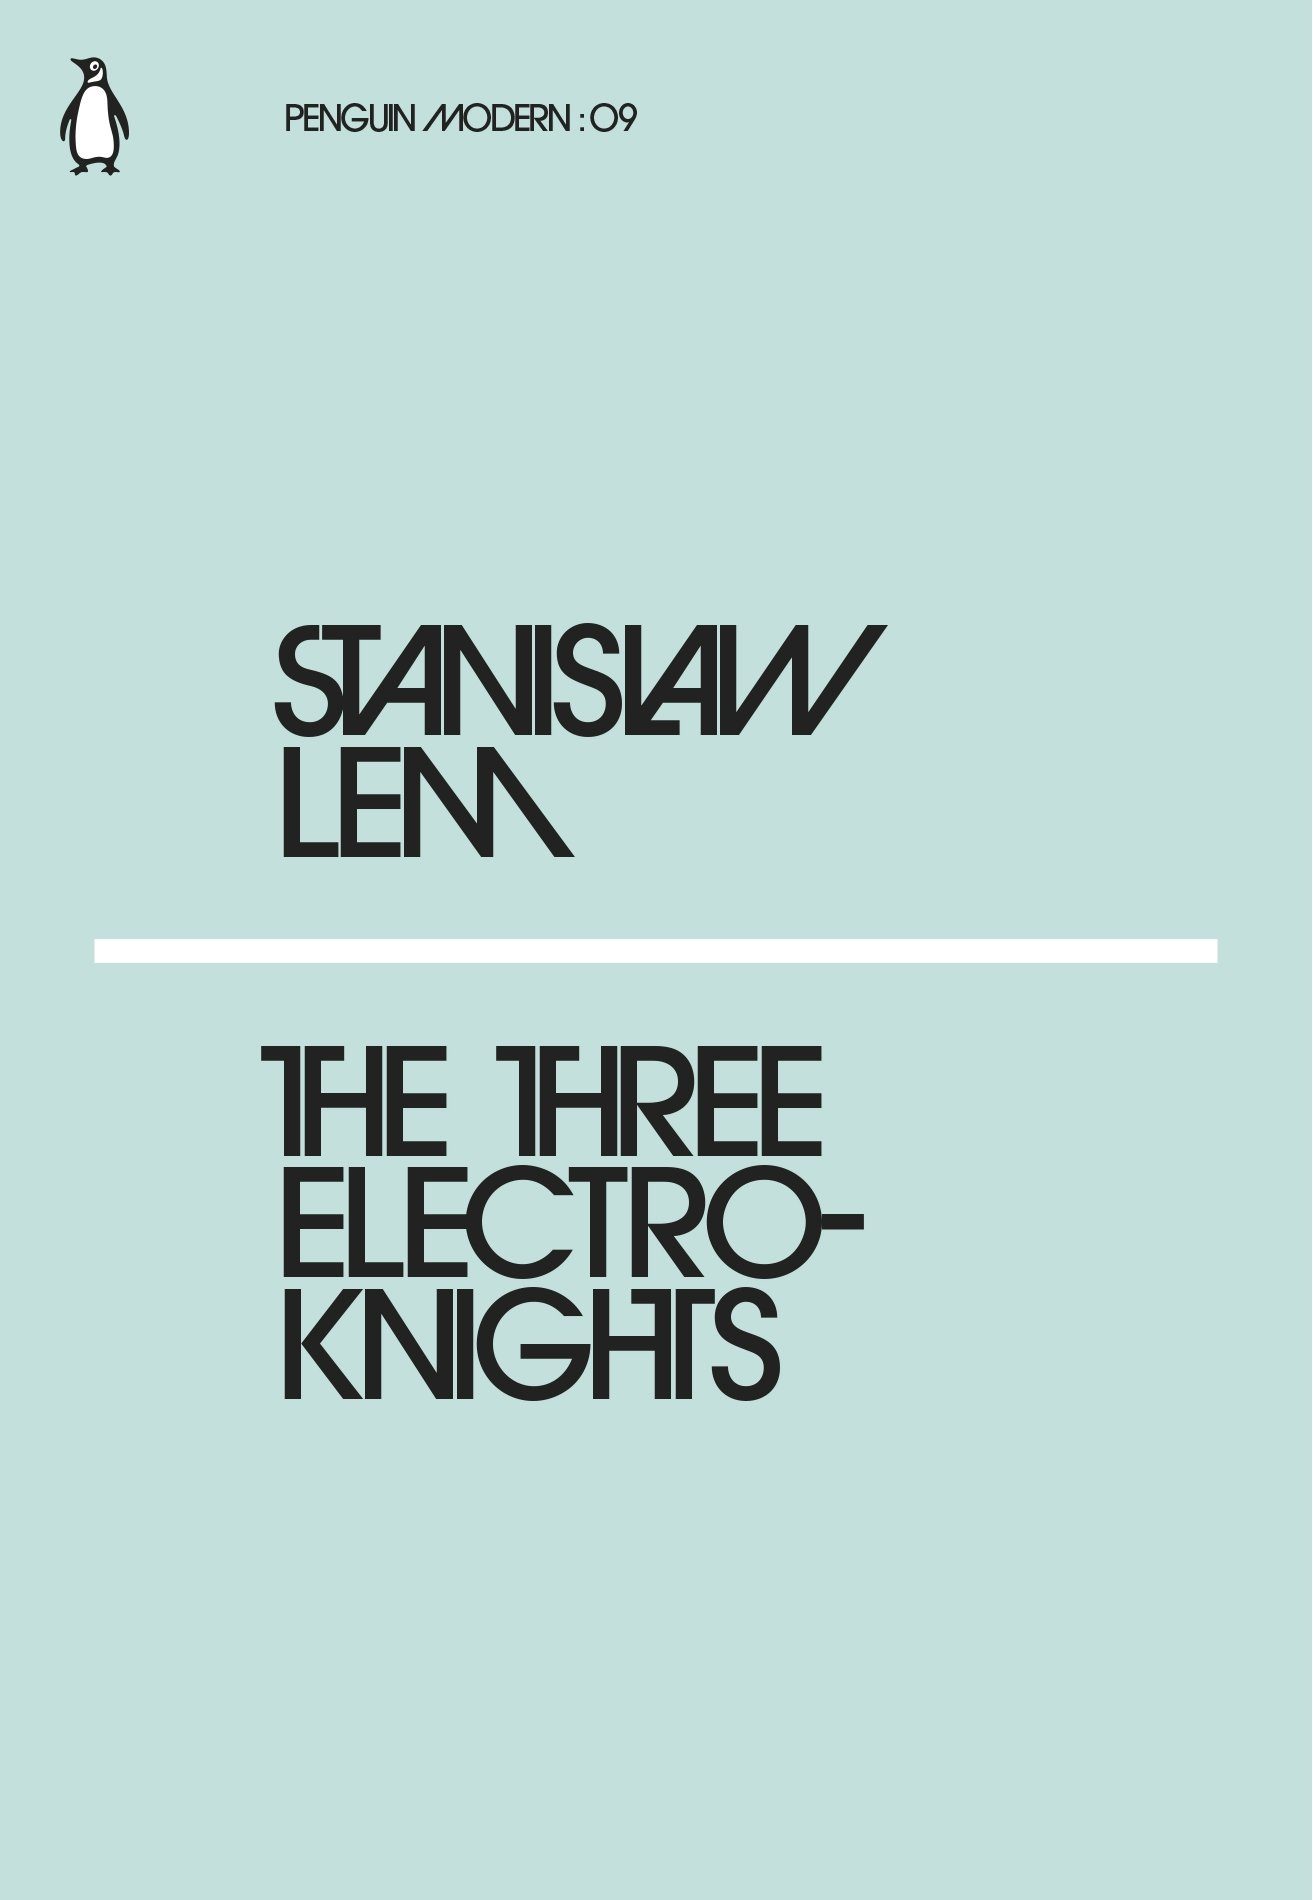 Stanislaw Lem - The Three Electroknights. 4 Short Stories